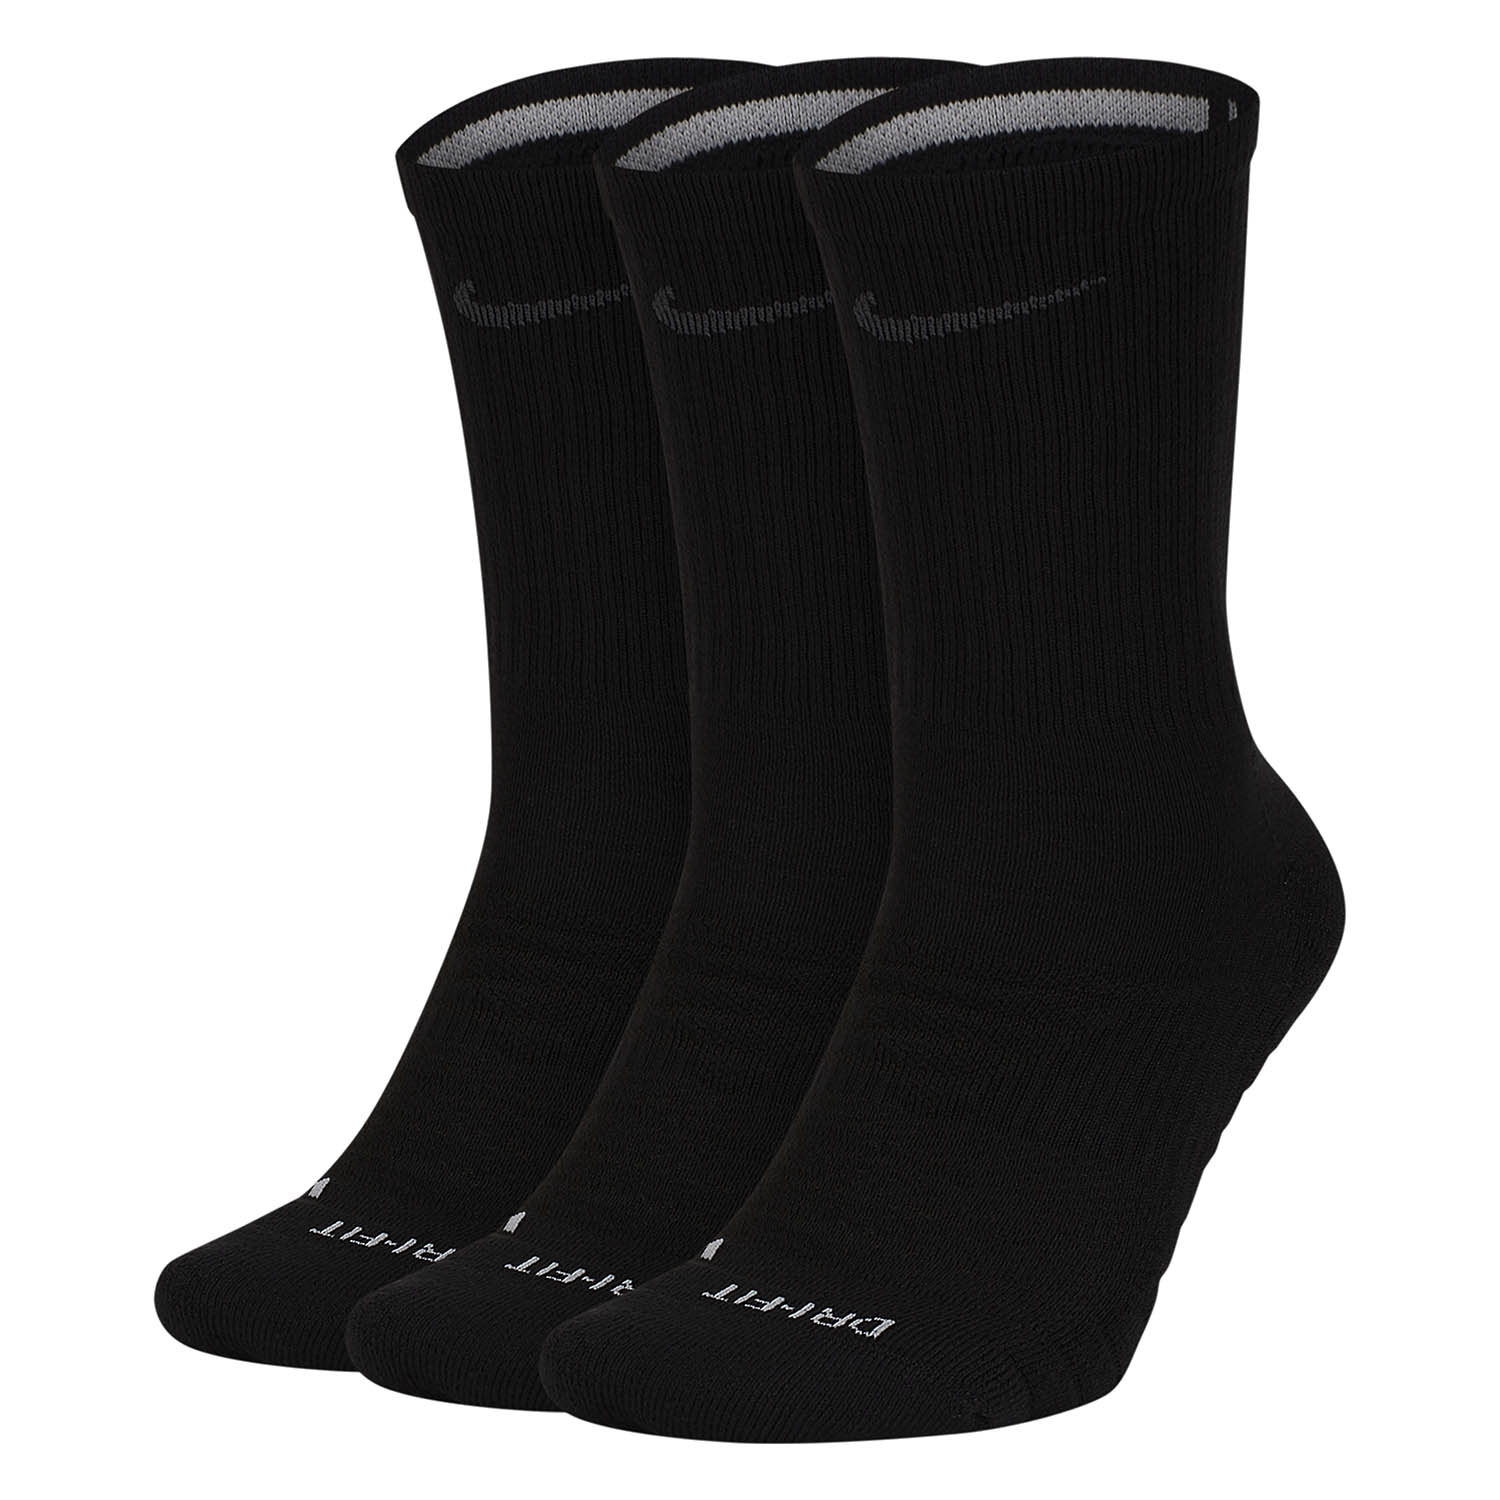 Nike Pro Everyday Max Cushioned x 3 Socks - Black/Wolf Grey